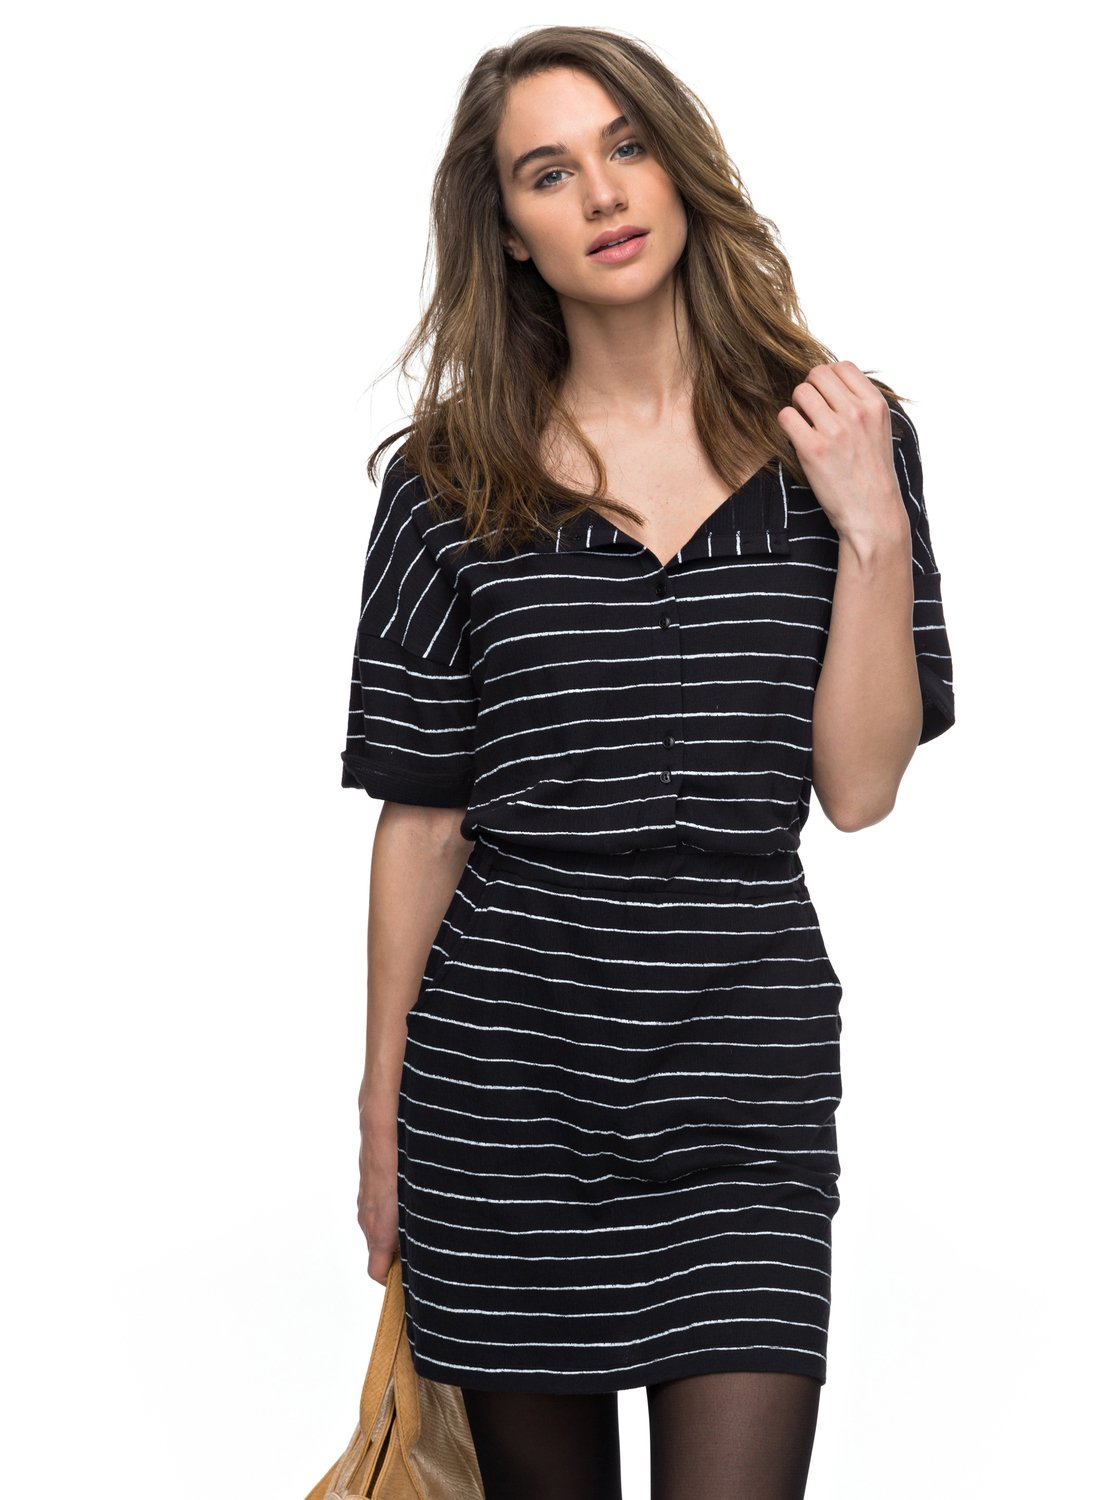 Feel It All - Robe manches courtes pour Femme - Roxy